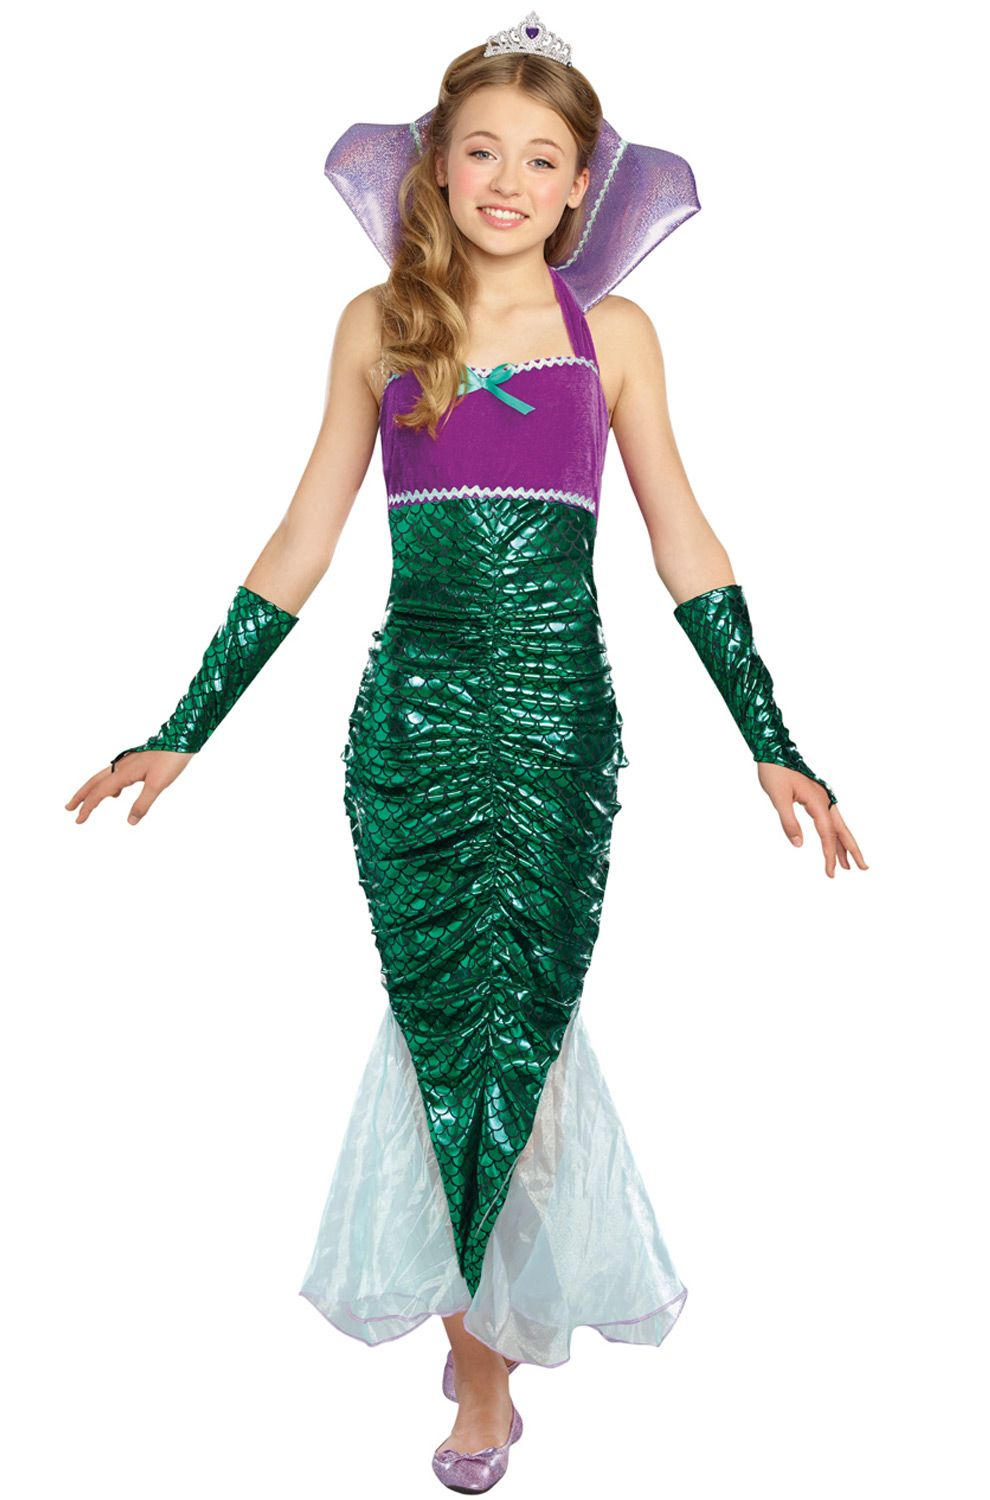 6e24a7593d874 Princess Of The Sea Tween Costume #mermaids #party #Halloween #costumes Sc  1 St Pinterest